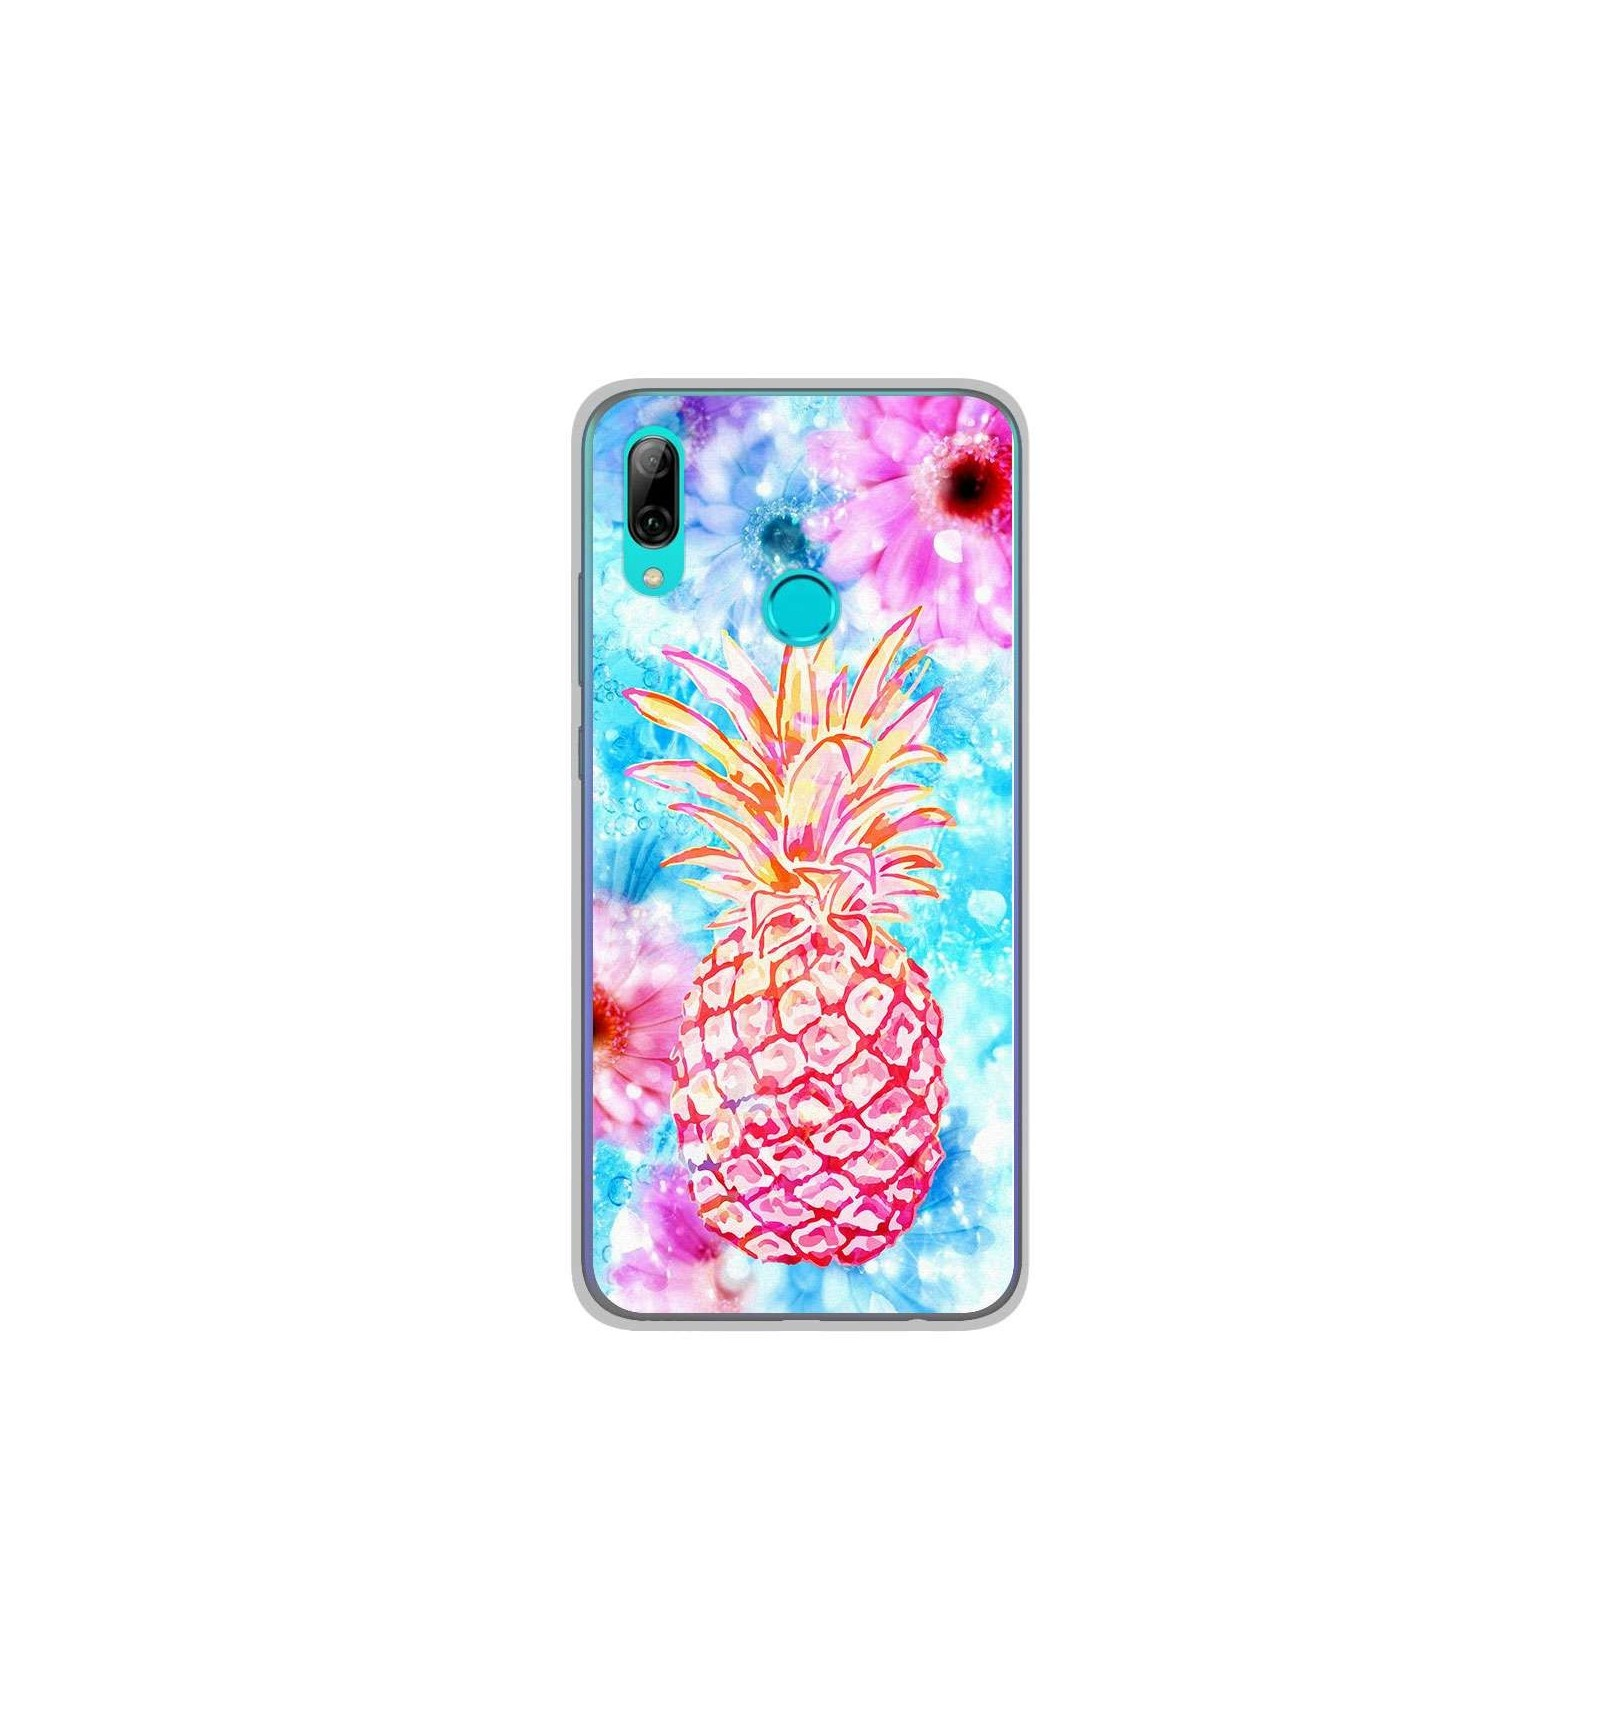 coque silicone p smart 2019 huawei